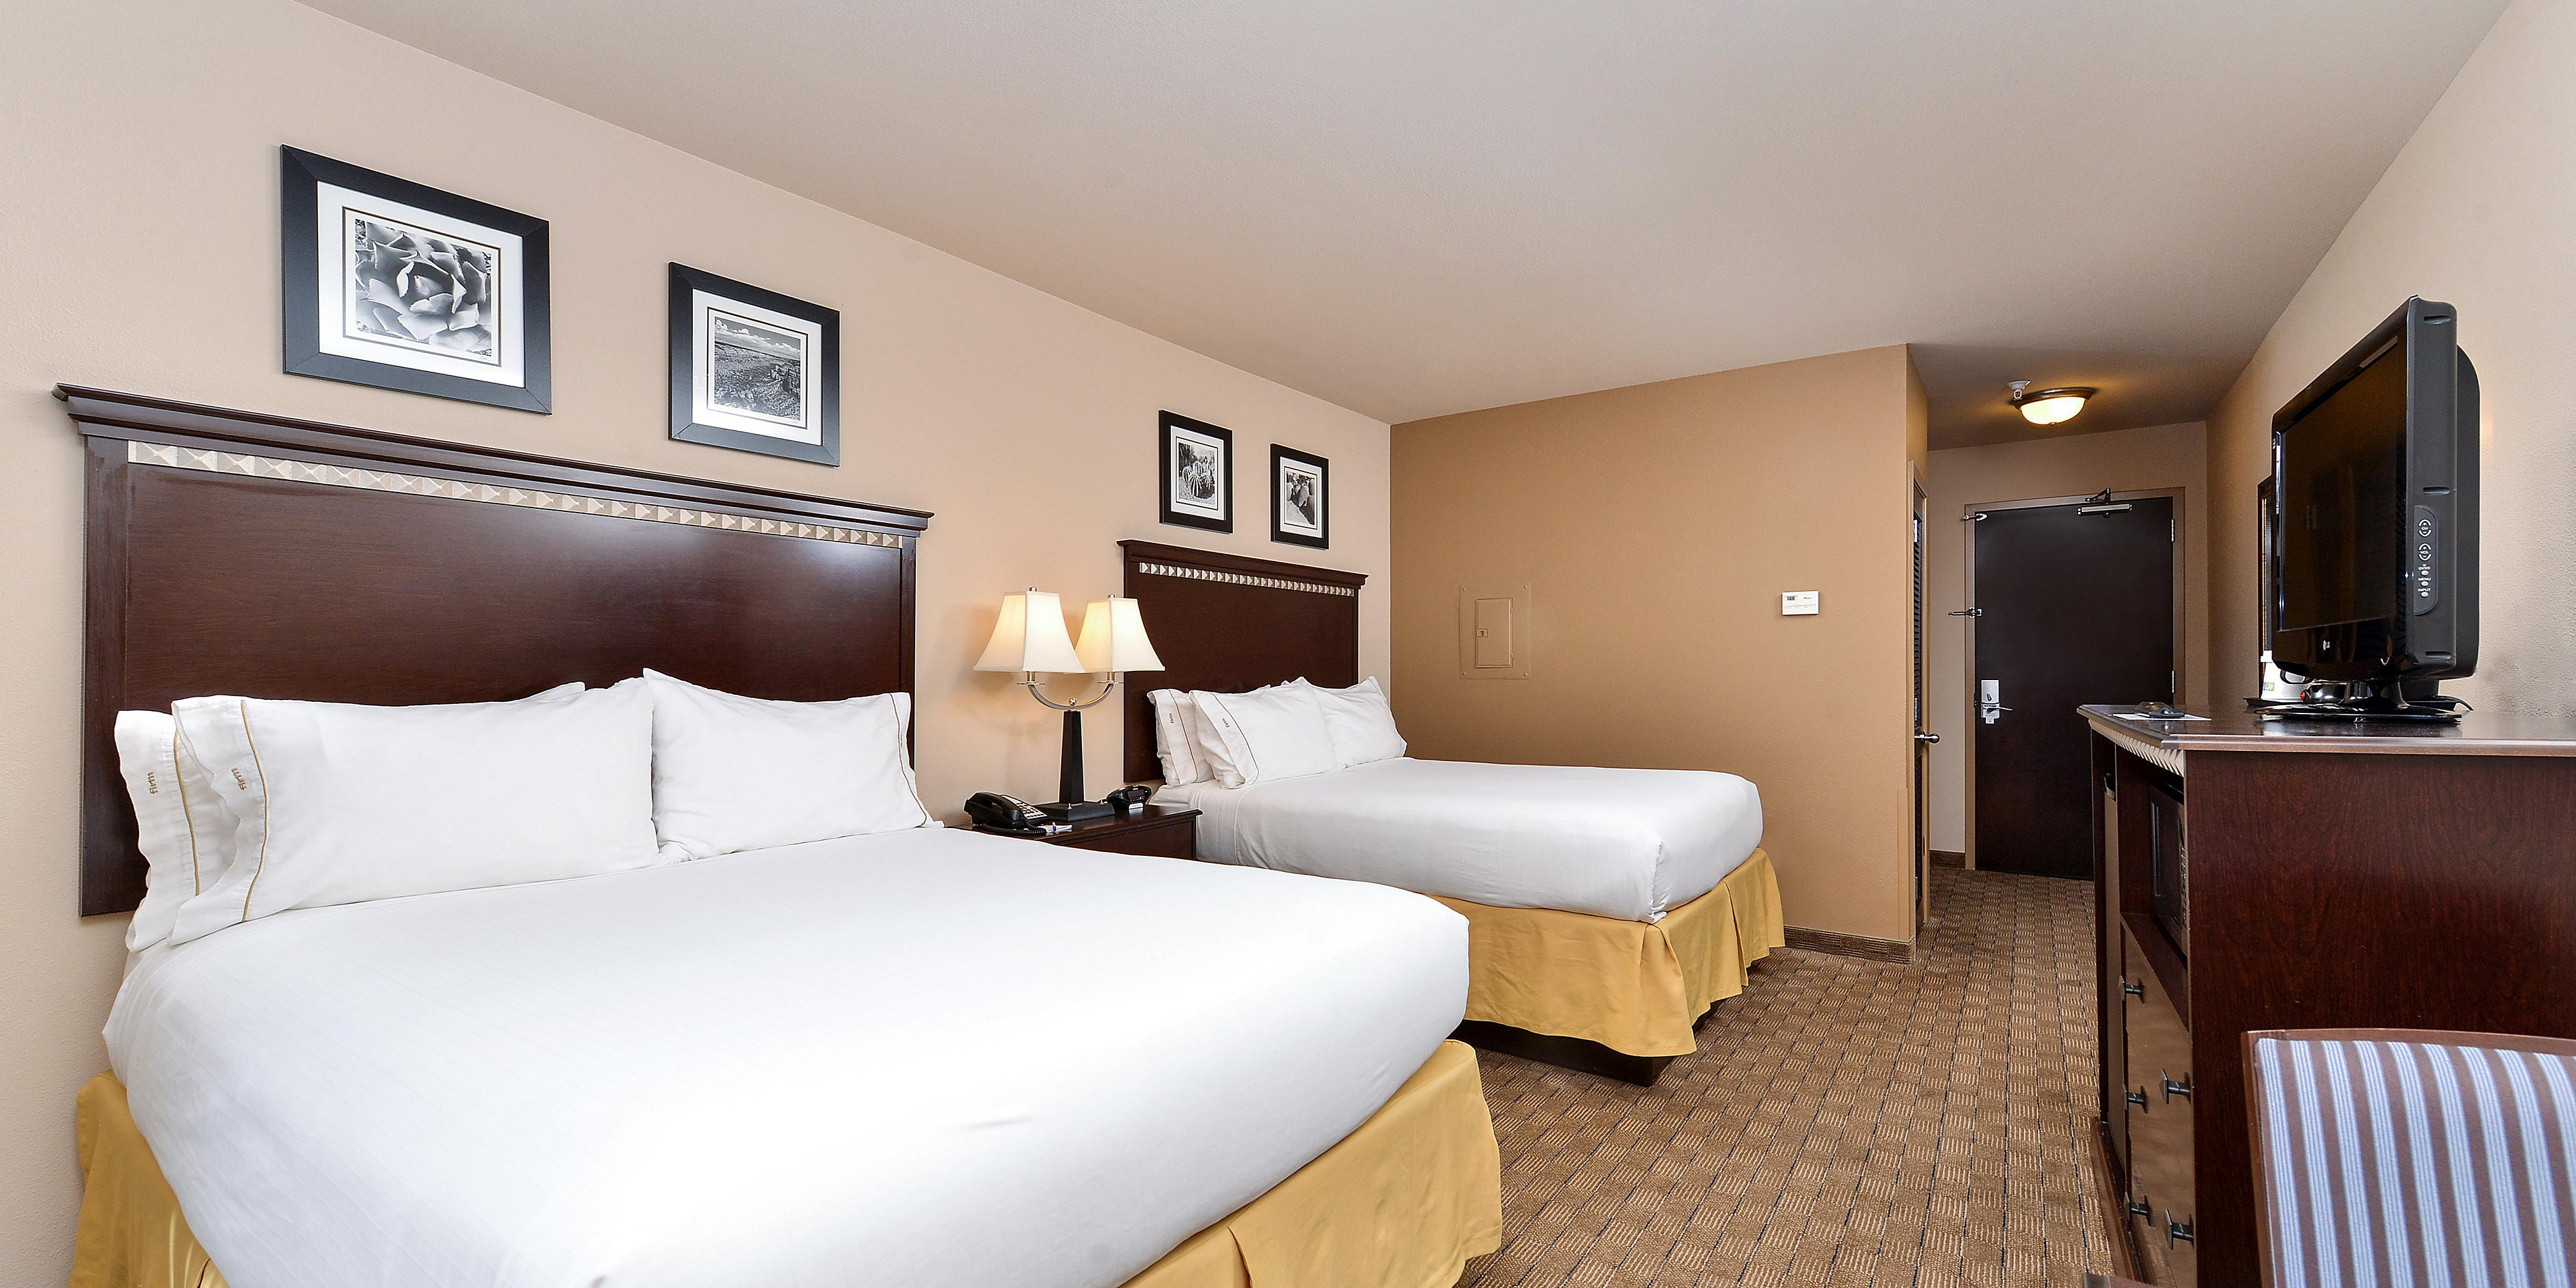 Holiday Inn Express And Suites Albuquerque 4284781315 2x1